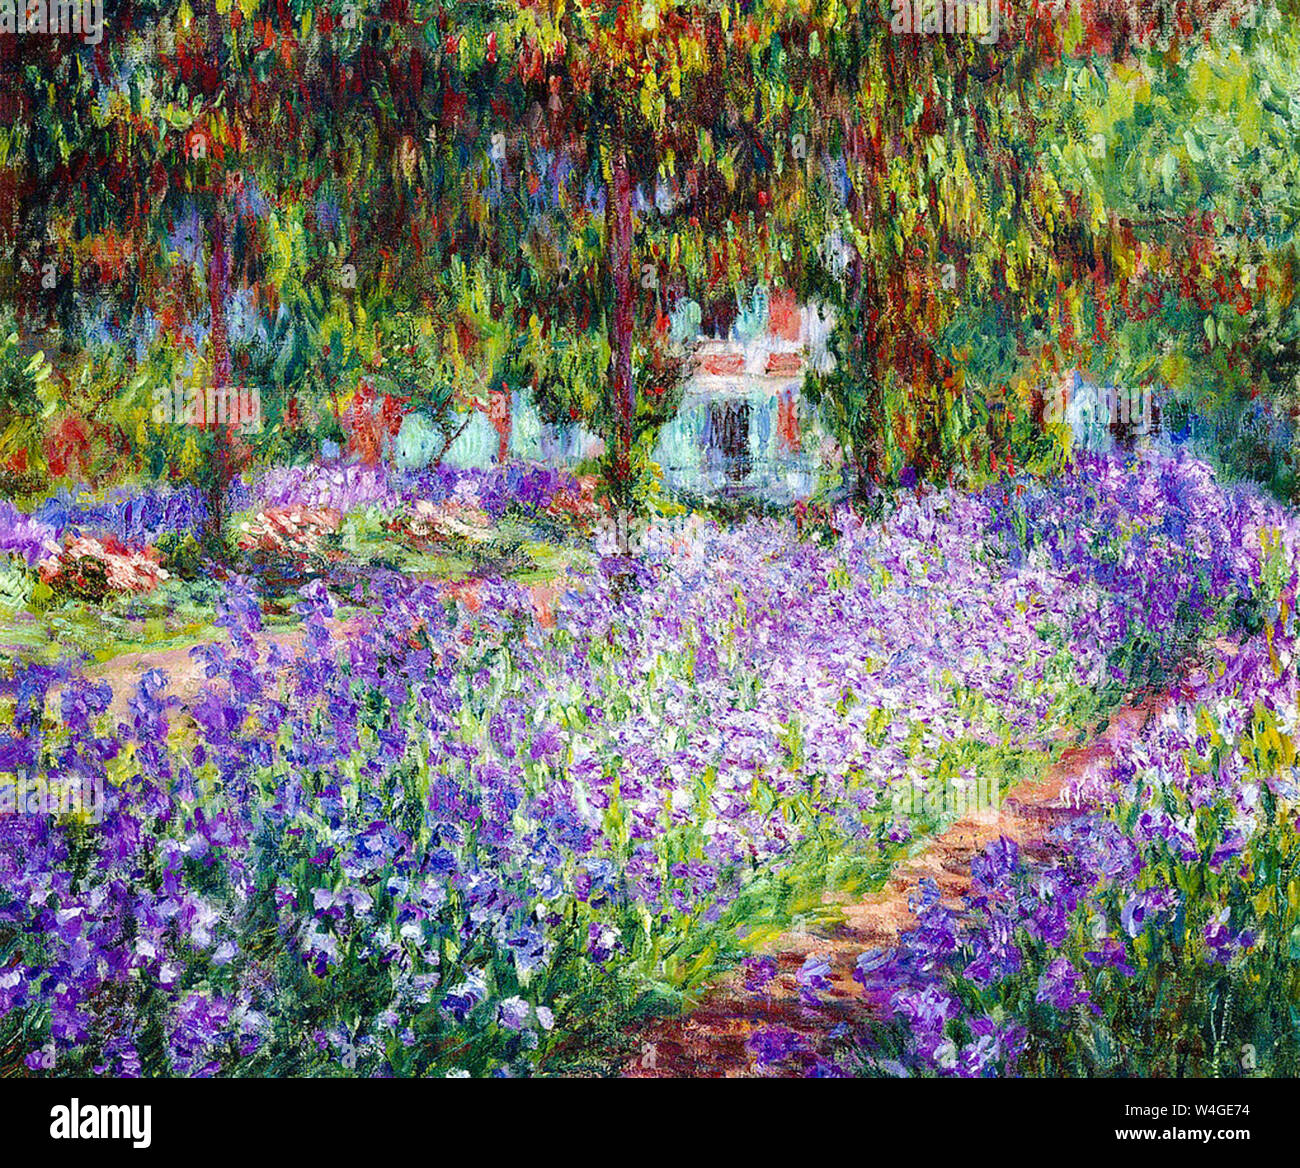 Claude Monet The Artist S Garden At Giverny Painting 1900 Stock